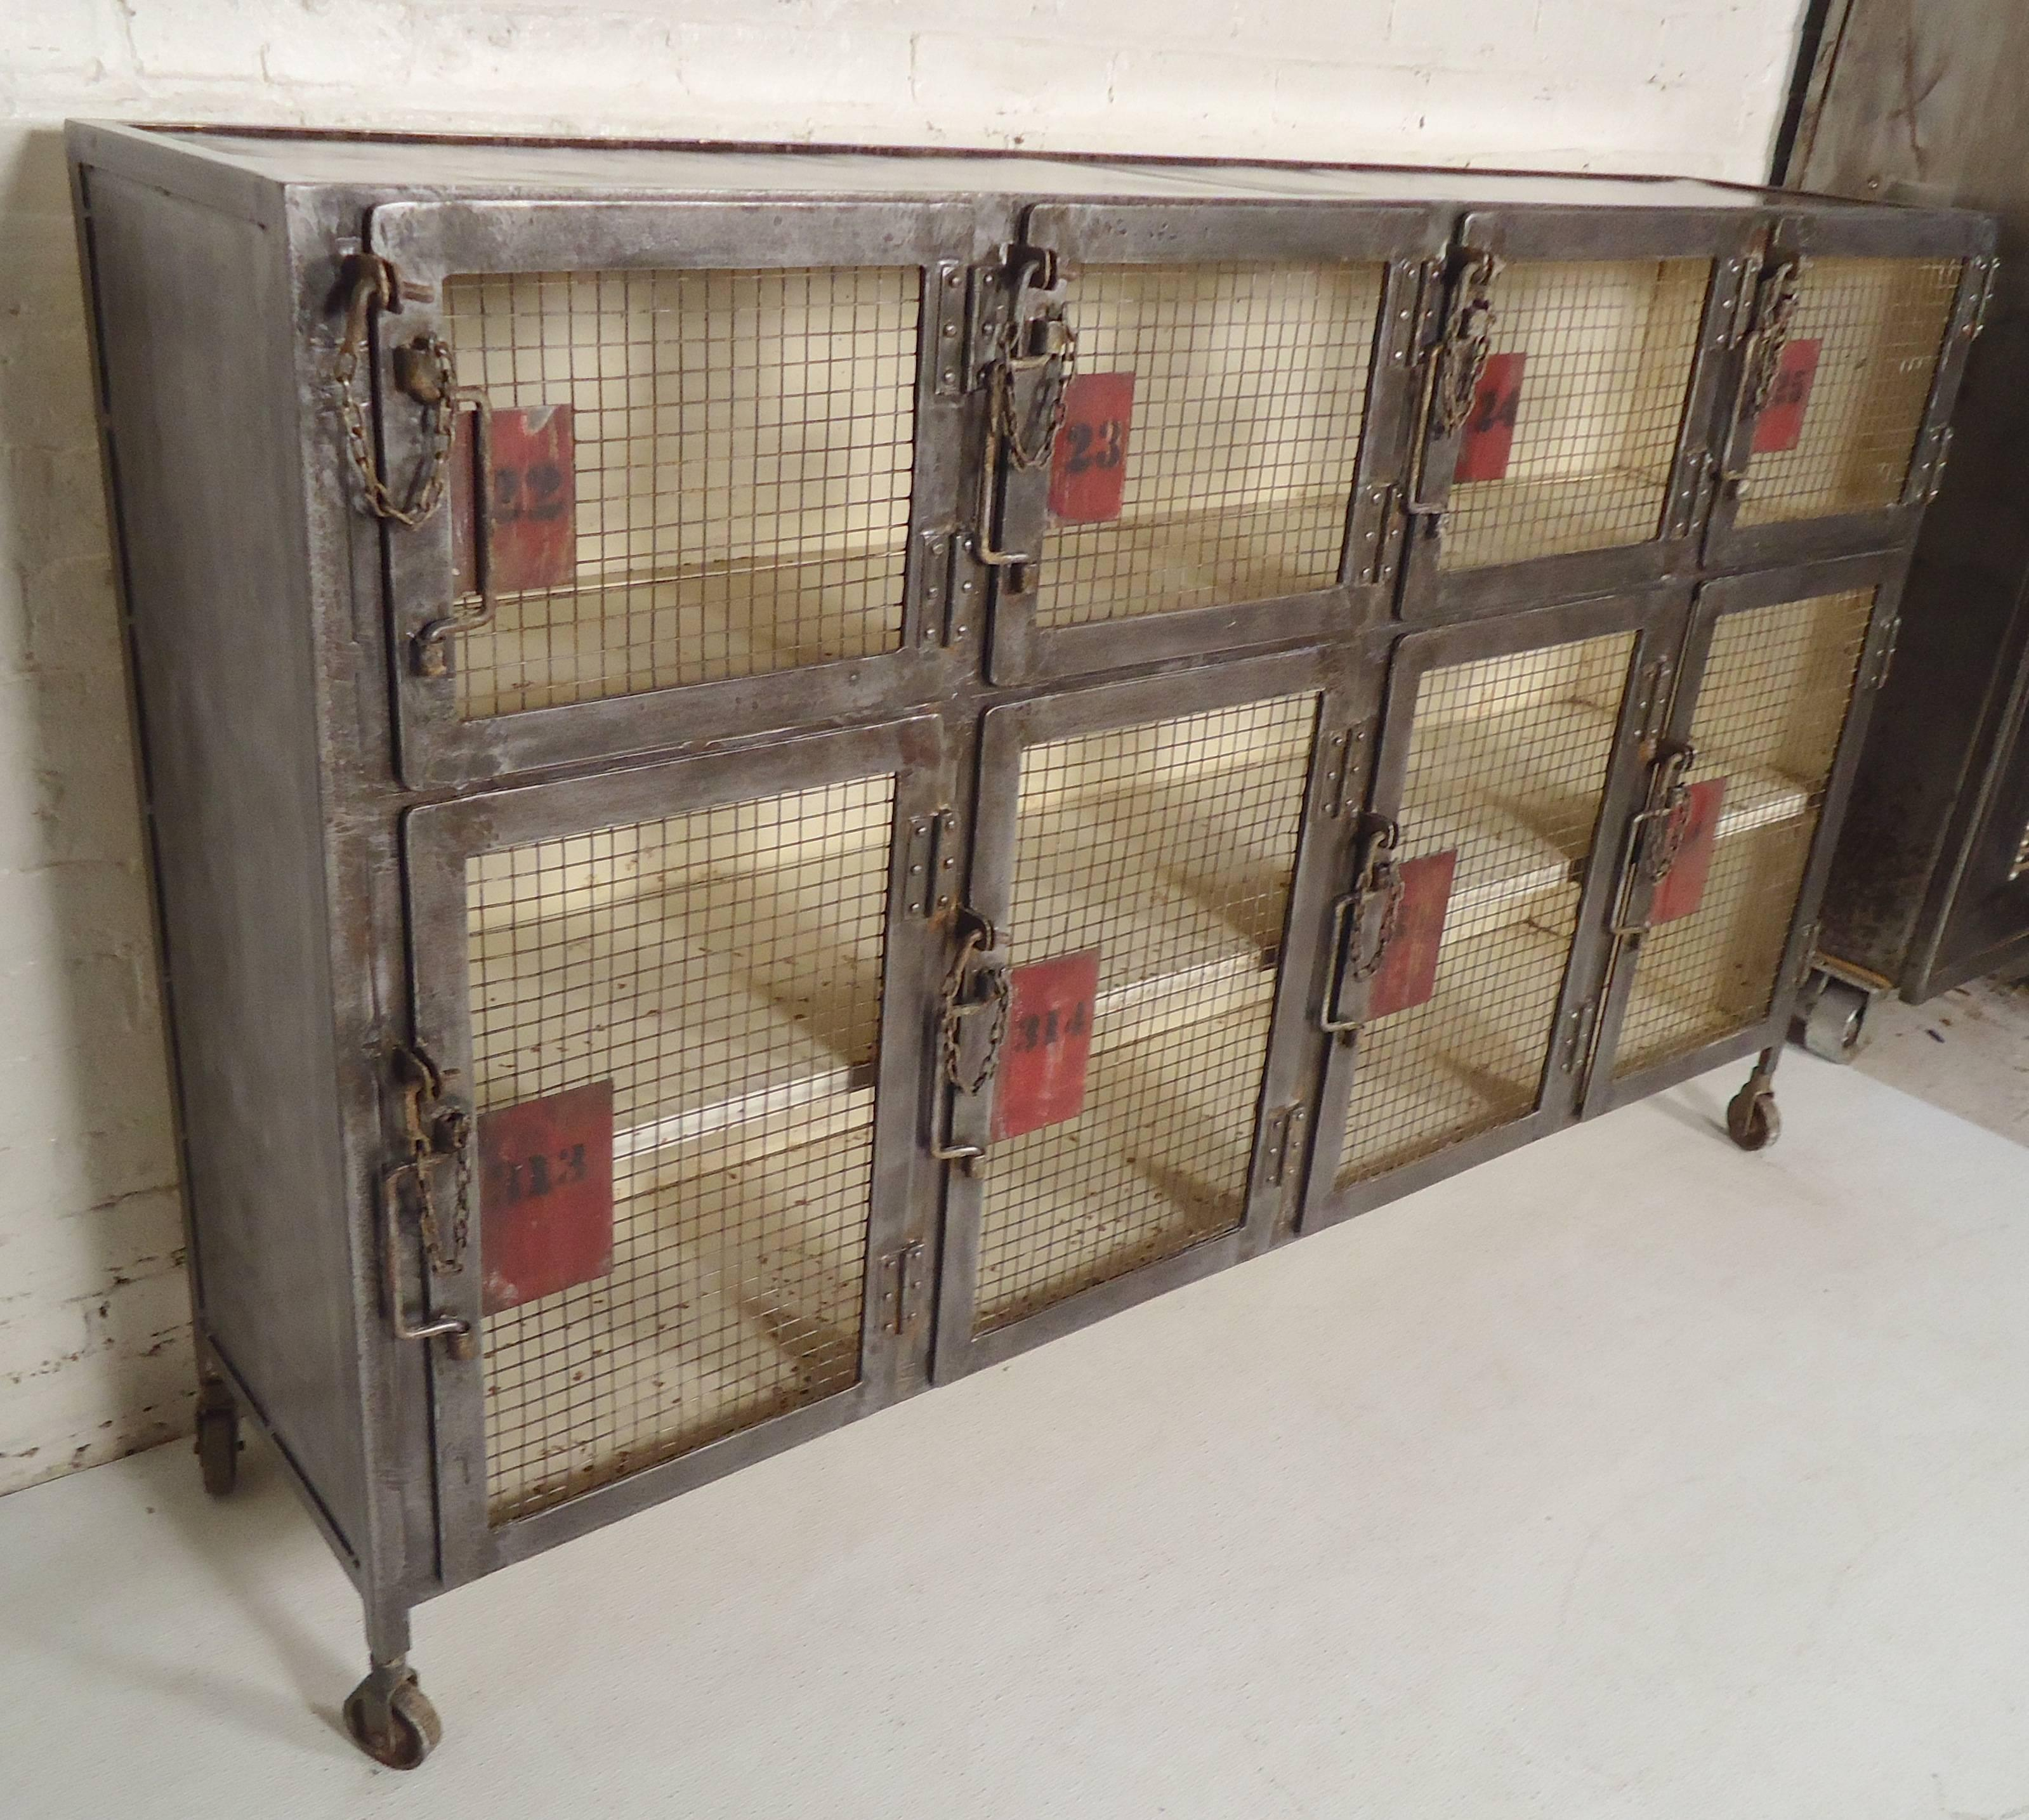 Metal Cabinet Stripped And Restored With A Bare Metal Style Finish. Great  For Storage Or